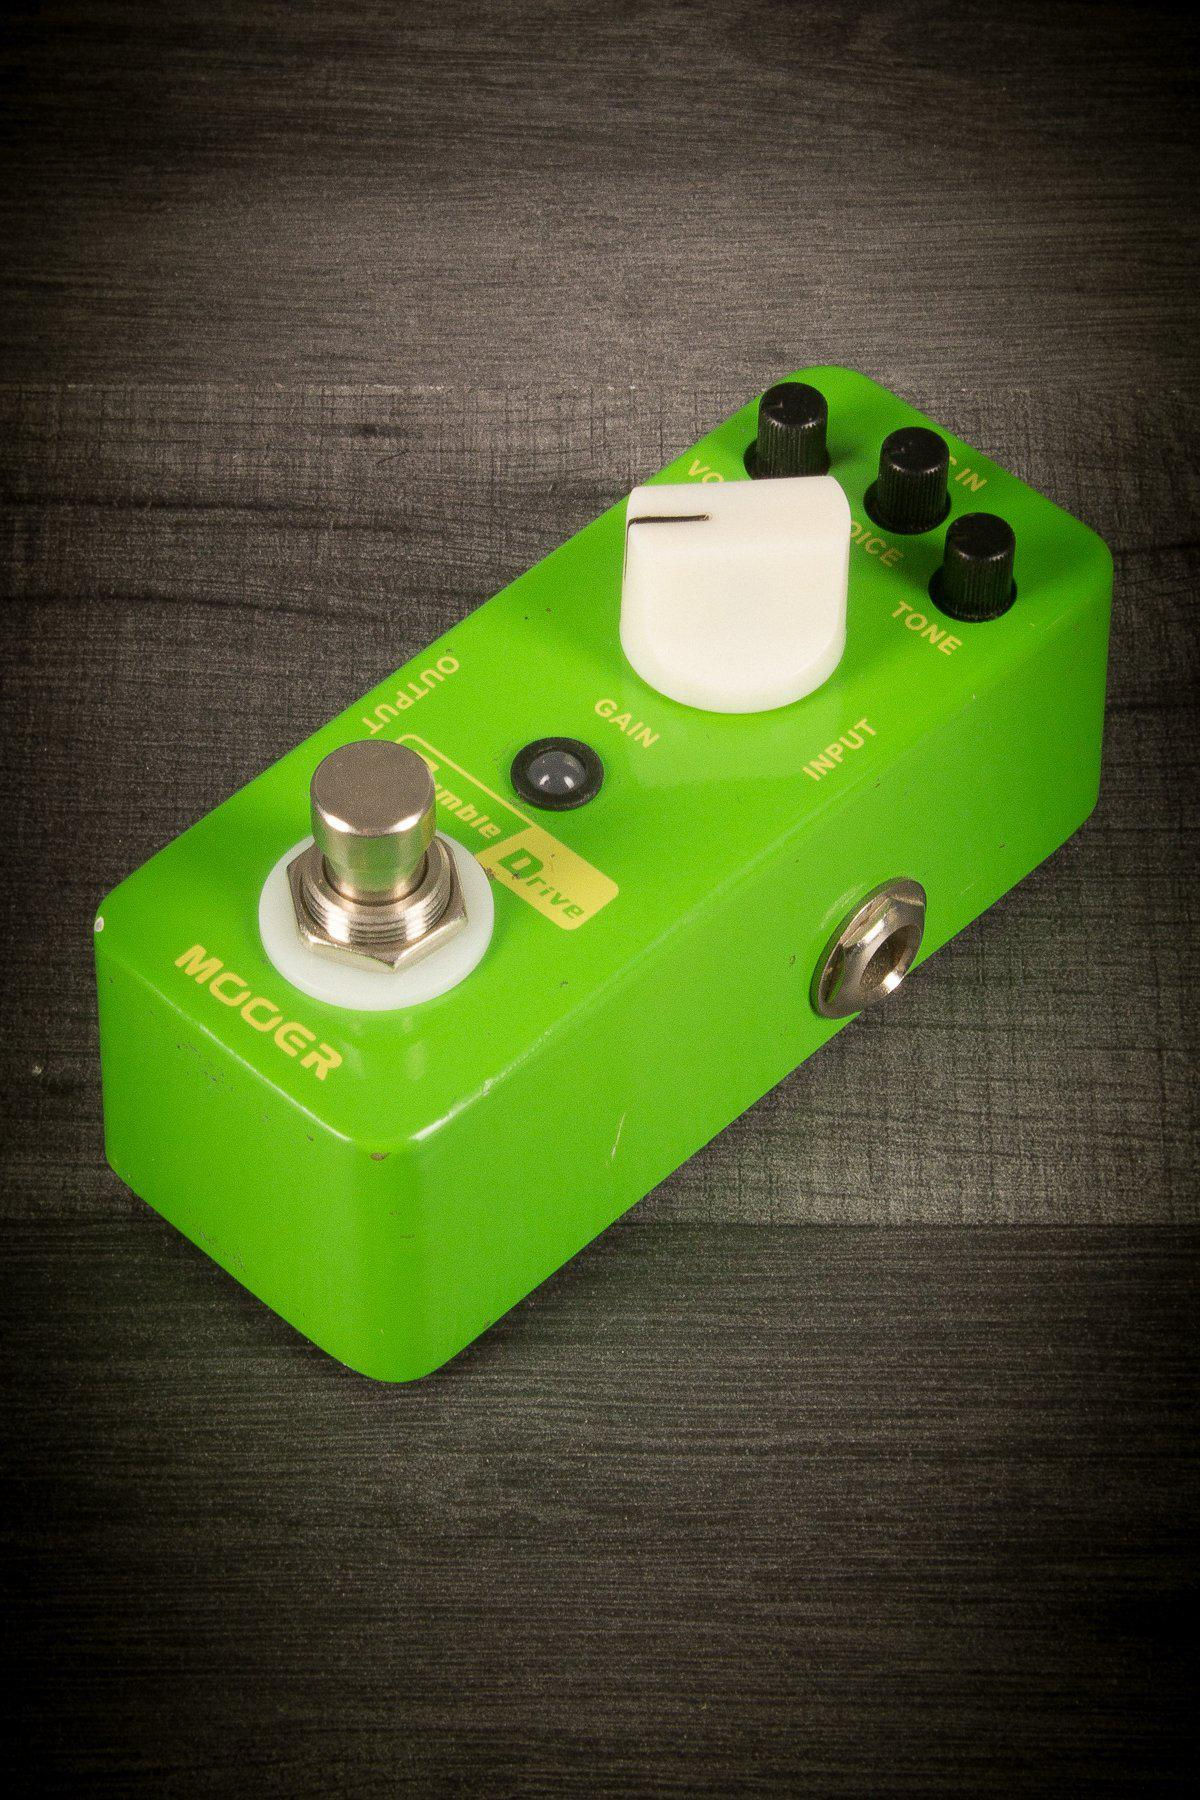 New Mooer Rumble Drive Rumble Sound Overdrive Micro Guitar Effects Pedal